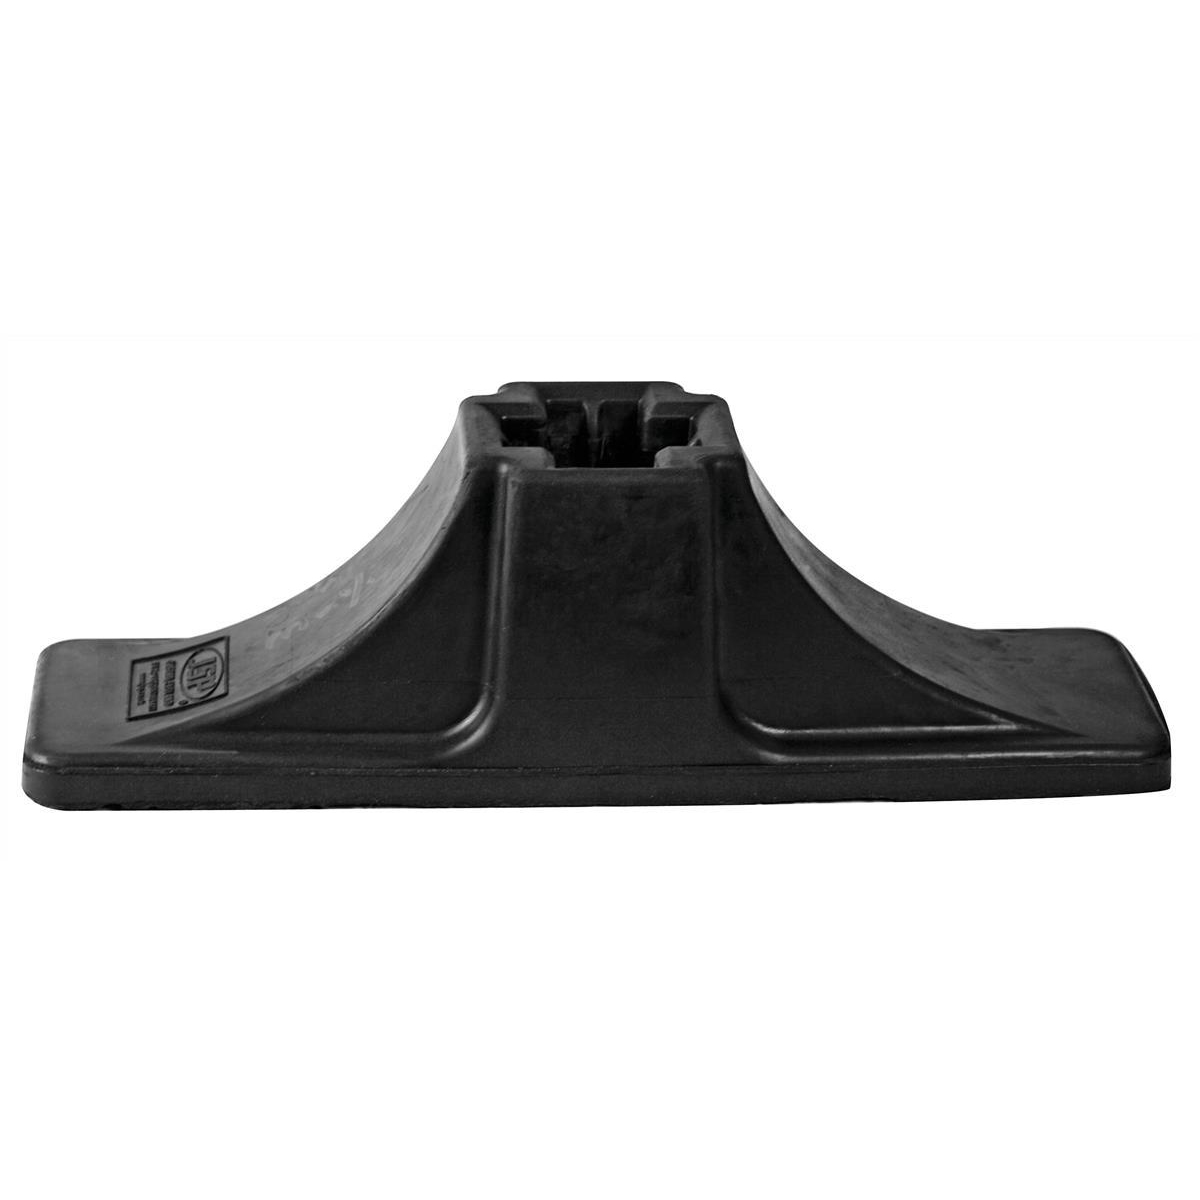 Workgate Base for Gate Barrier Black Ref KEV000-001-100